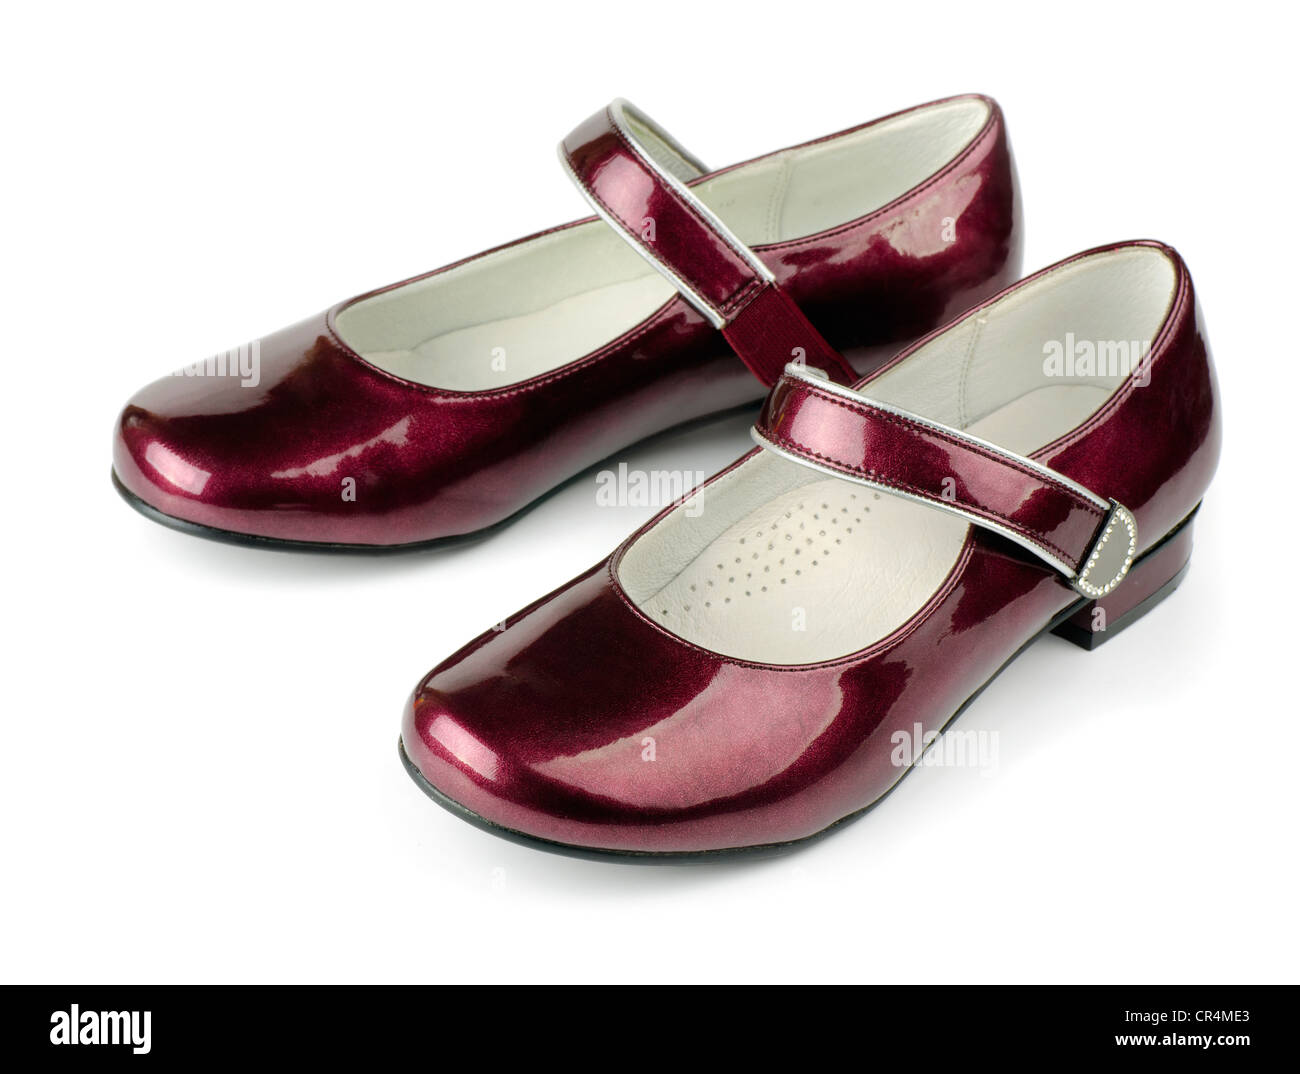 2469f9842ad4 Patent Leather Shoes Stock Photos   Patent Leather Shoes Stock ...